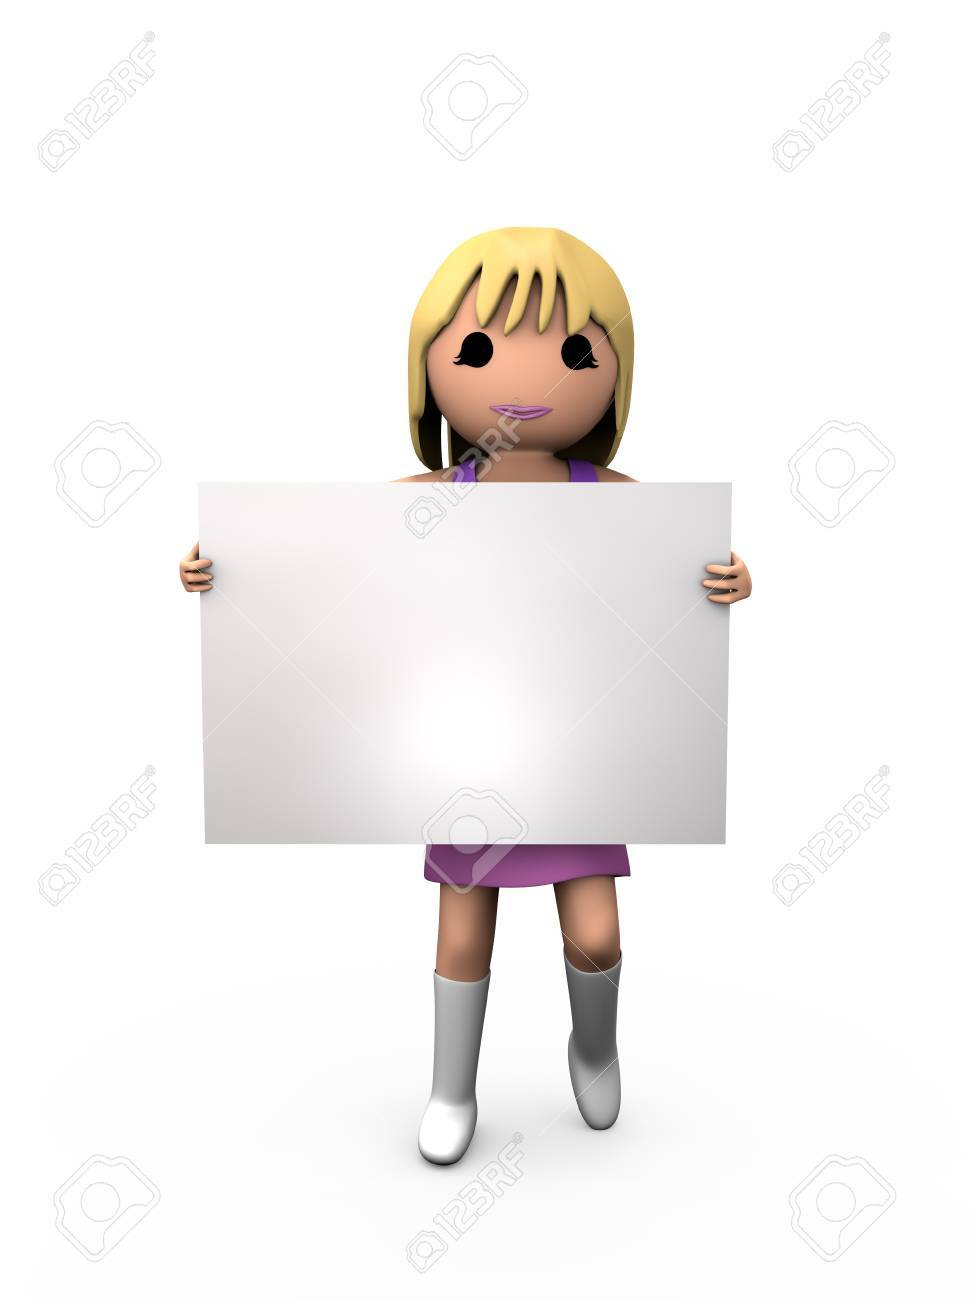 3D Blonde Woman Holding Blank Paper Shaded Copyspace - 7841831